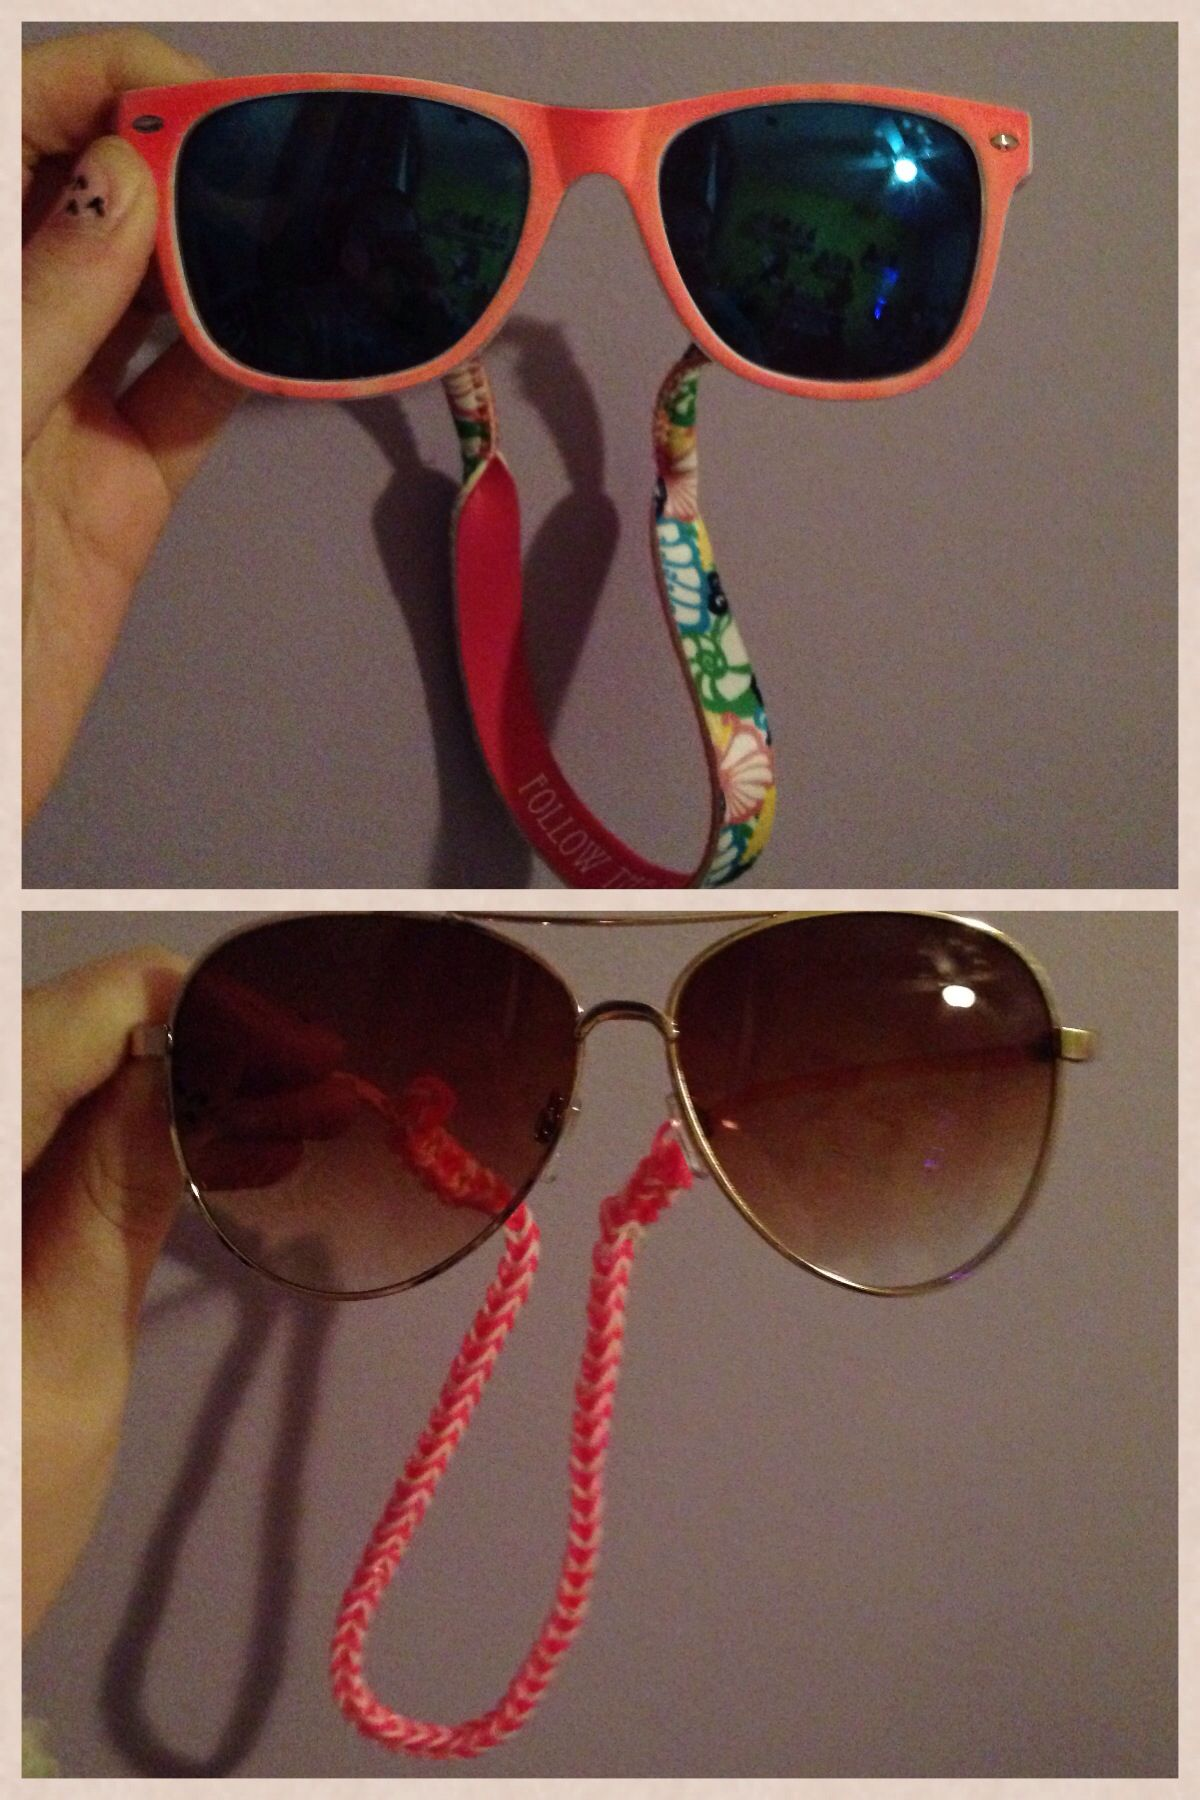 Ok so I needed a new lanyard thing for my sunglasses cause my Lilly Pulitzer ones were too stretched to put on my new ones. So I decided why not make one! All I did was just rainbow loom like I was gonna fishtail a bracket and made it long enough to put it on my sunglasses. Just loop it through the ends.